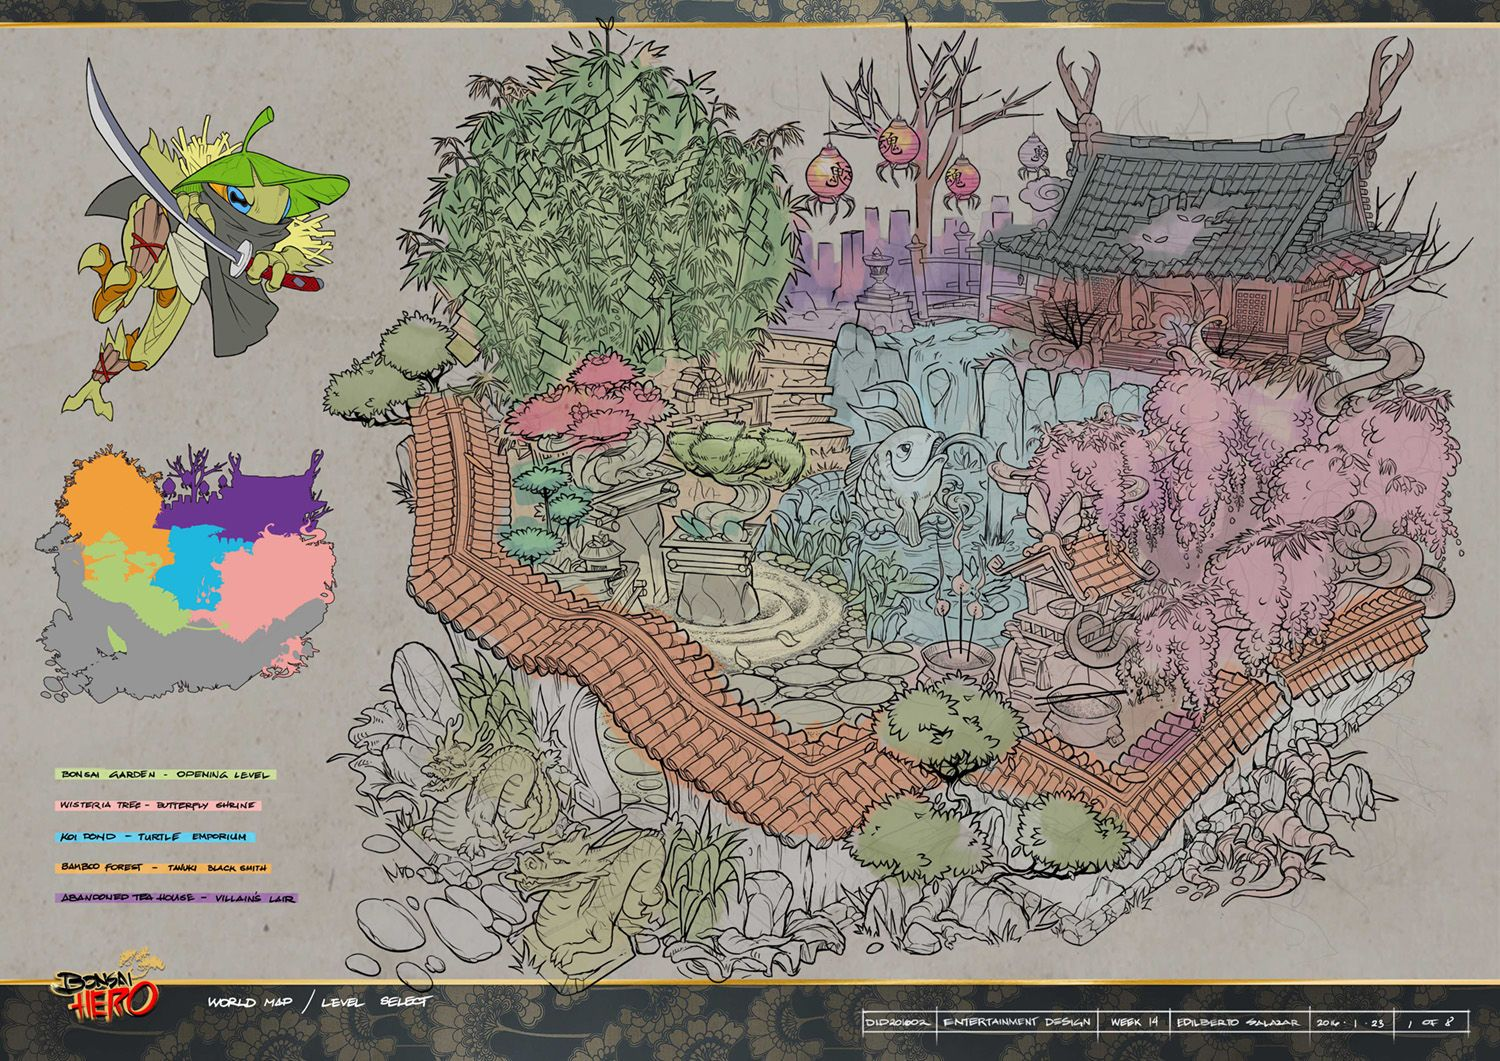 Feng zhu design games art maps pinterest game art and they have just completed their 1 year study at fzd school of design and build up impressive portfolio gumiabroncs Choice Image